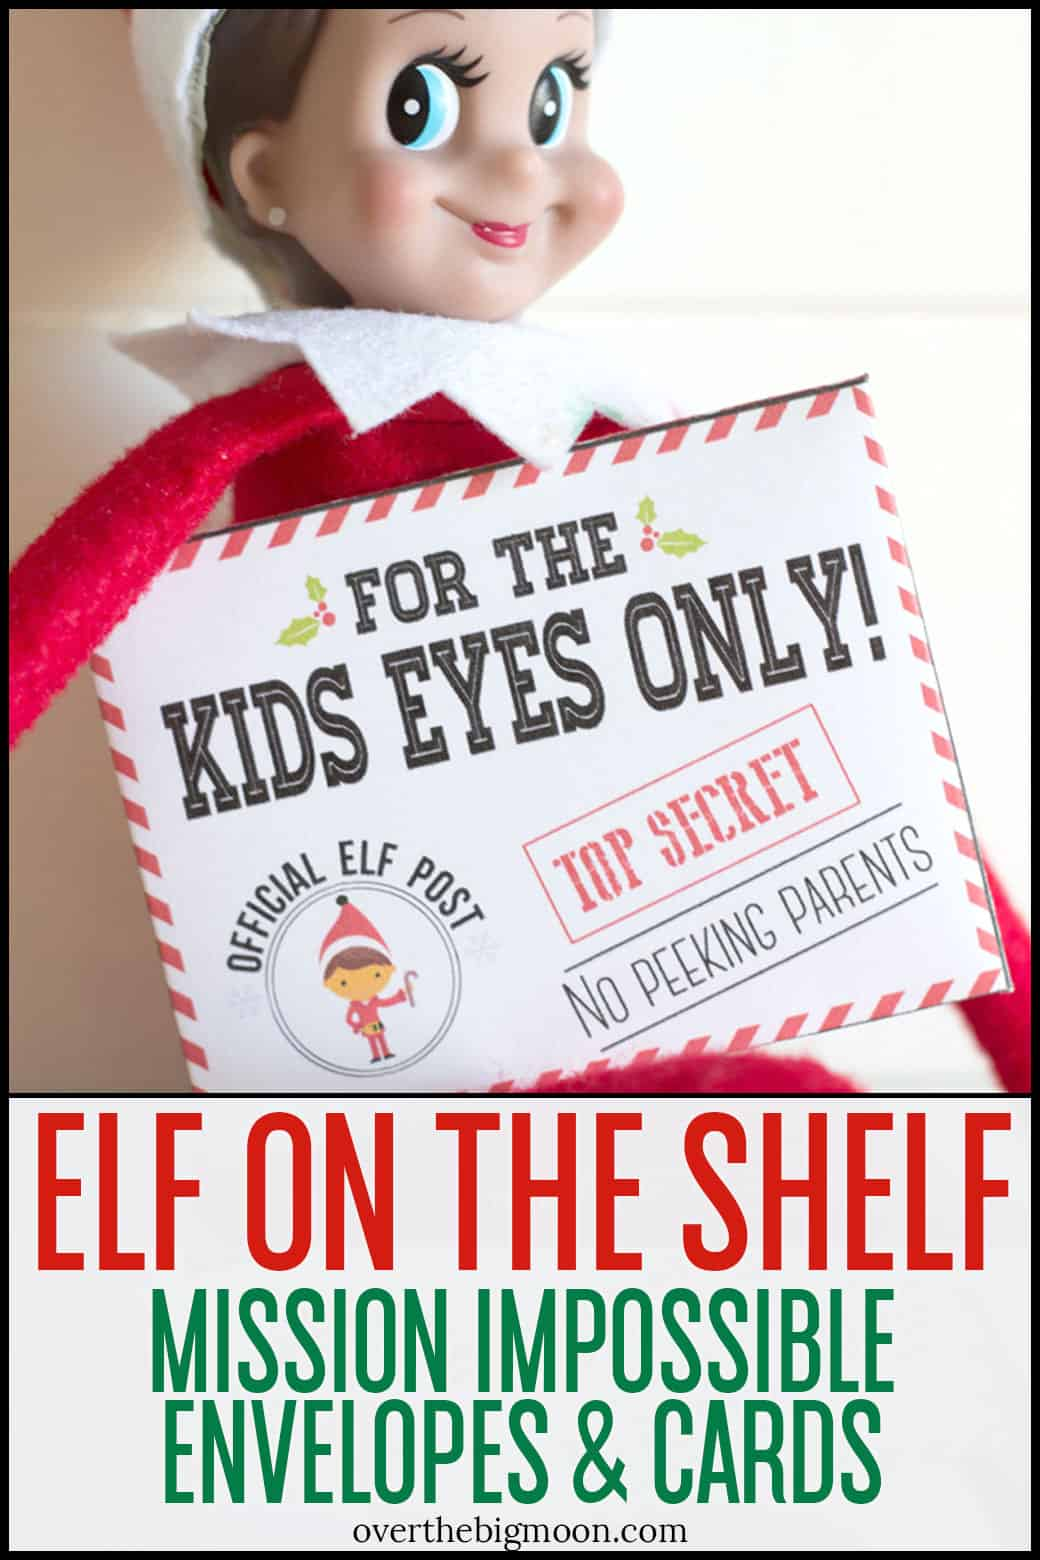 Elf on the Shelf Mission Impossible Envelopes and Mission Cards - these help encourage fun and service this Holiday season! From overthebigmoon.com!